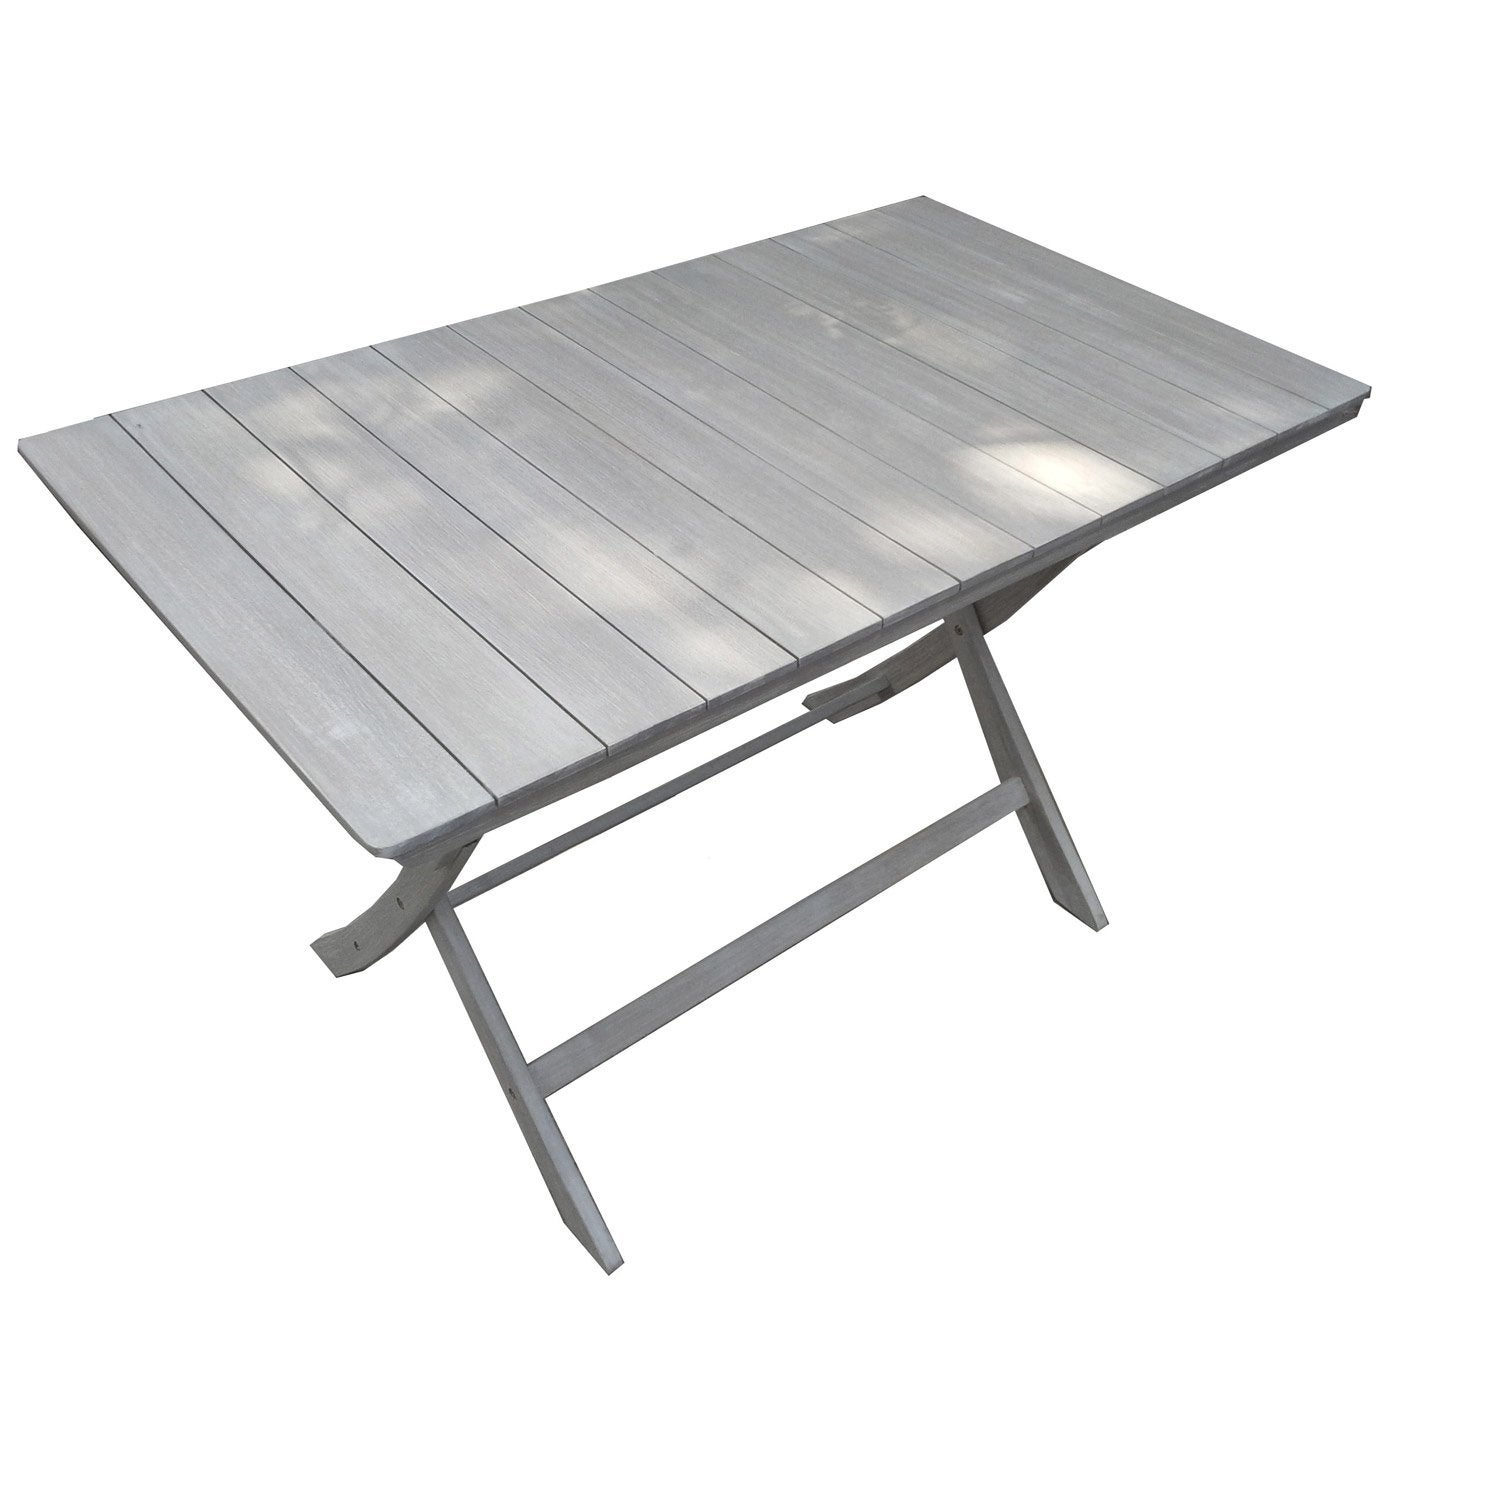 Table de jardin naterial portofino rectangulaire gris 4 - Leroy merlin table pliante ...